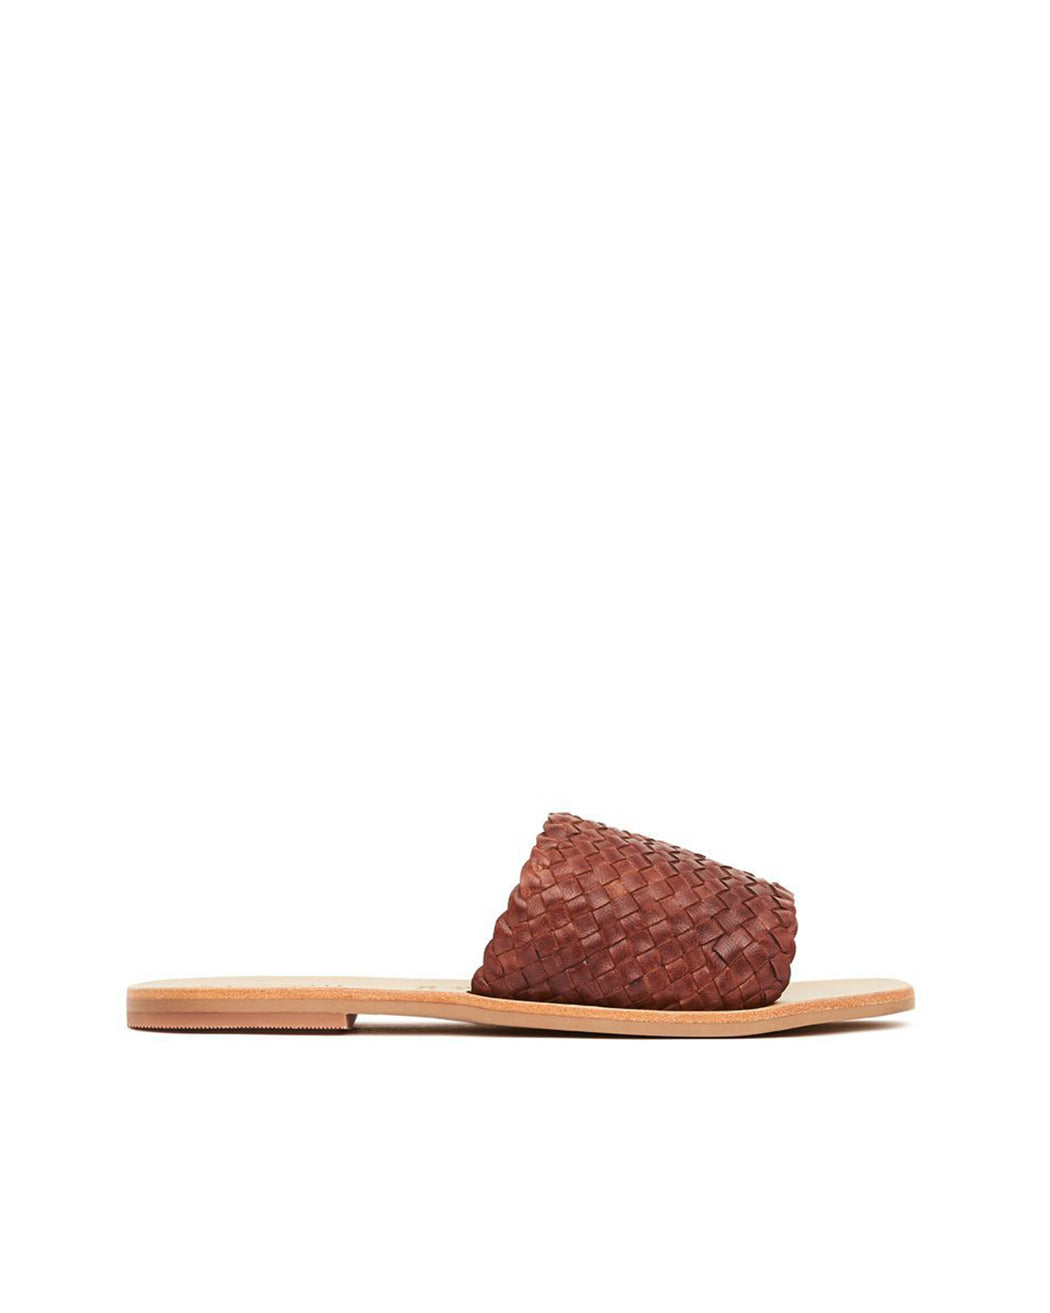 ST. AGNI:Alice Woven Slide – Antique Tan,ANOMIE